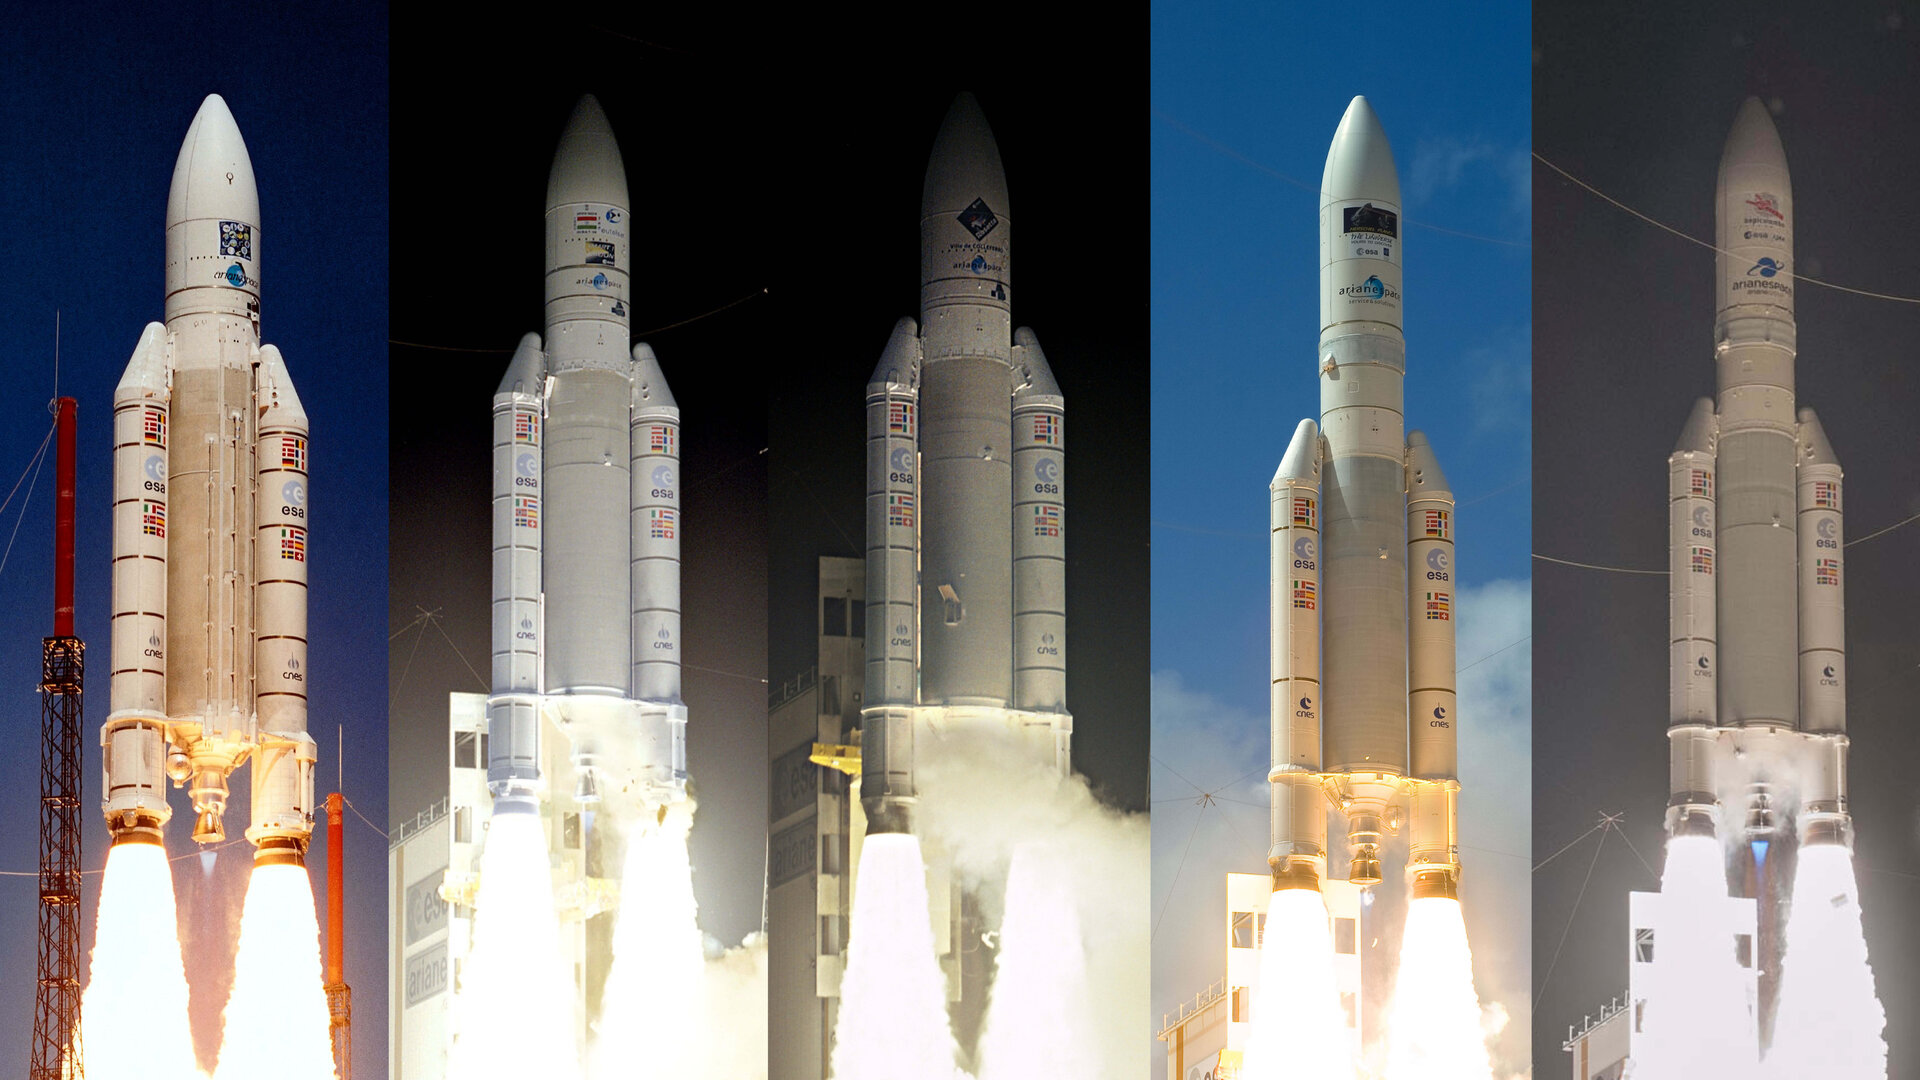 Ariane 5 launchers with science missions onboard